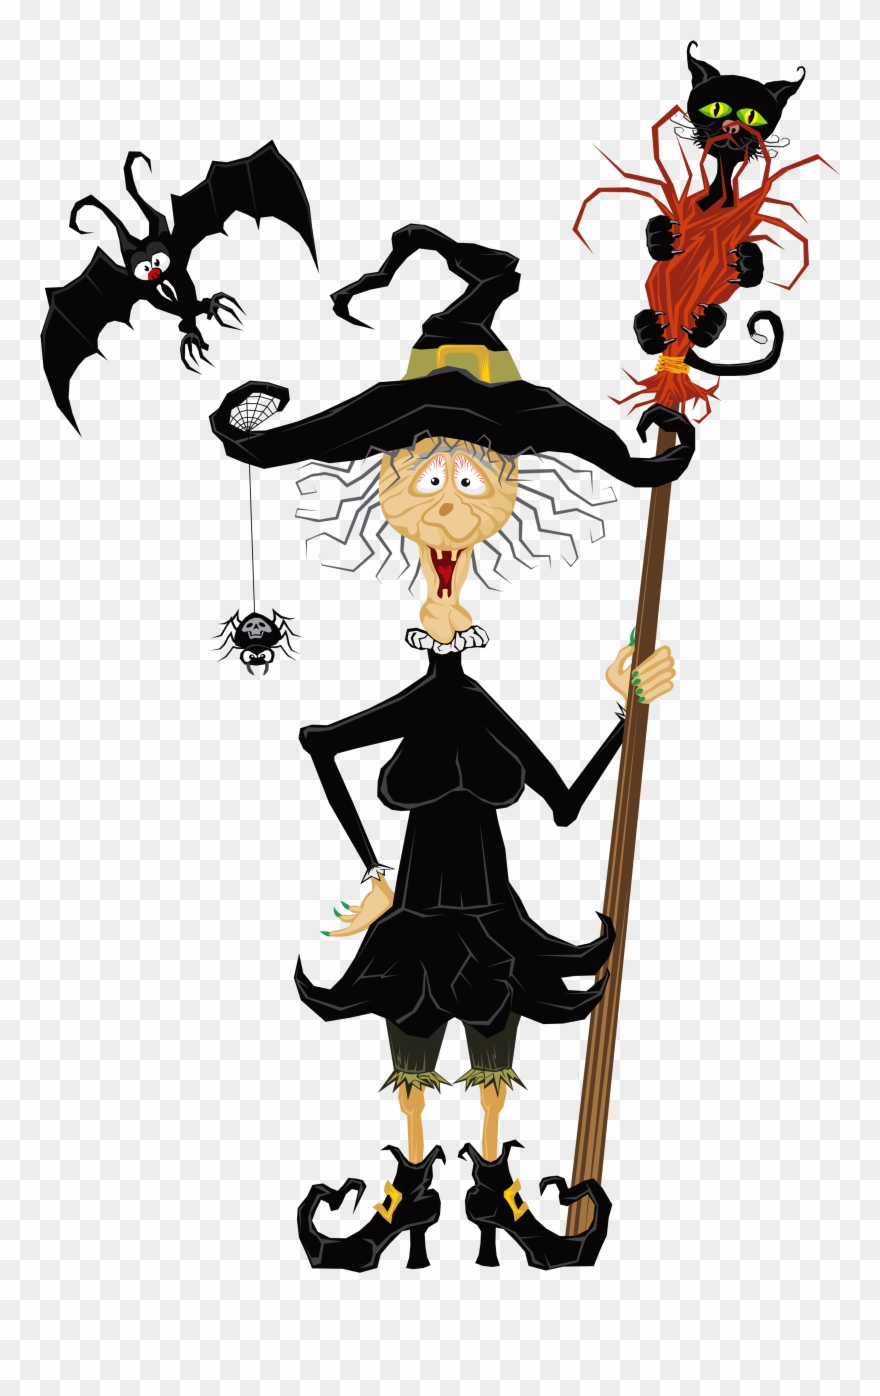 Witch clipart creepy. Halloween clip art